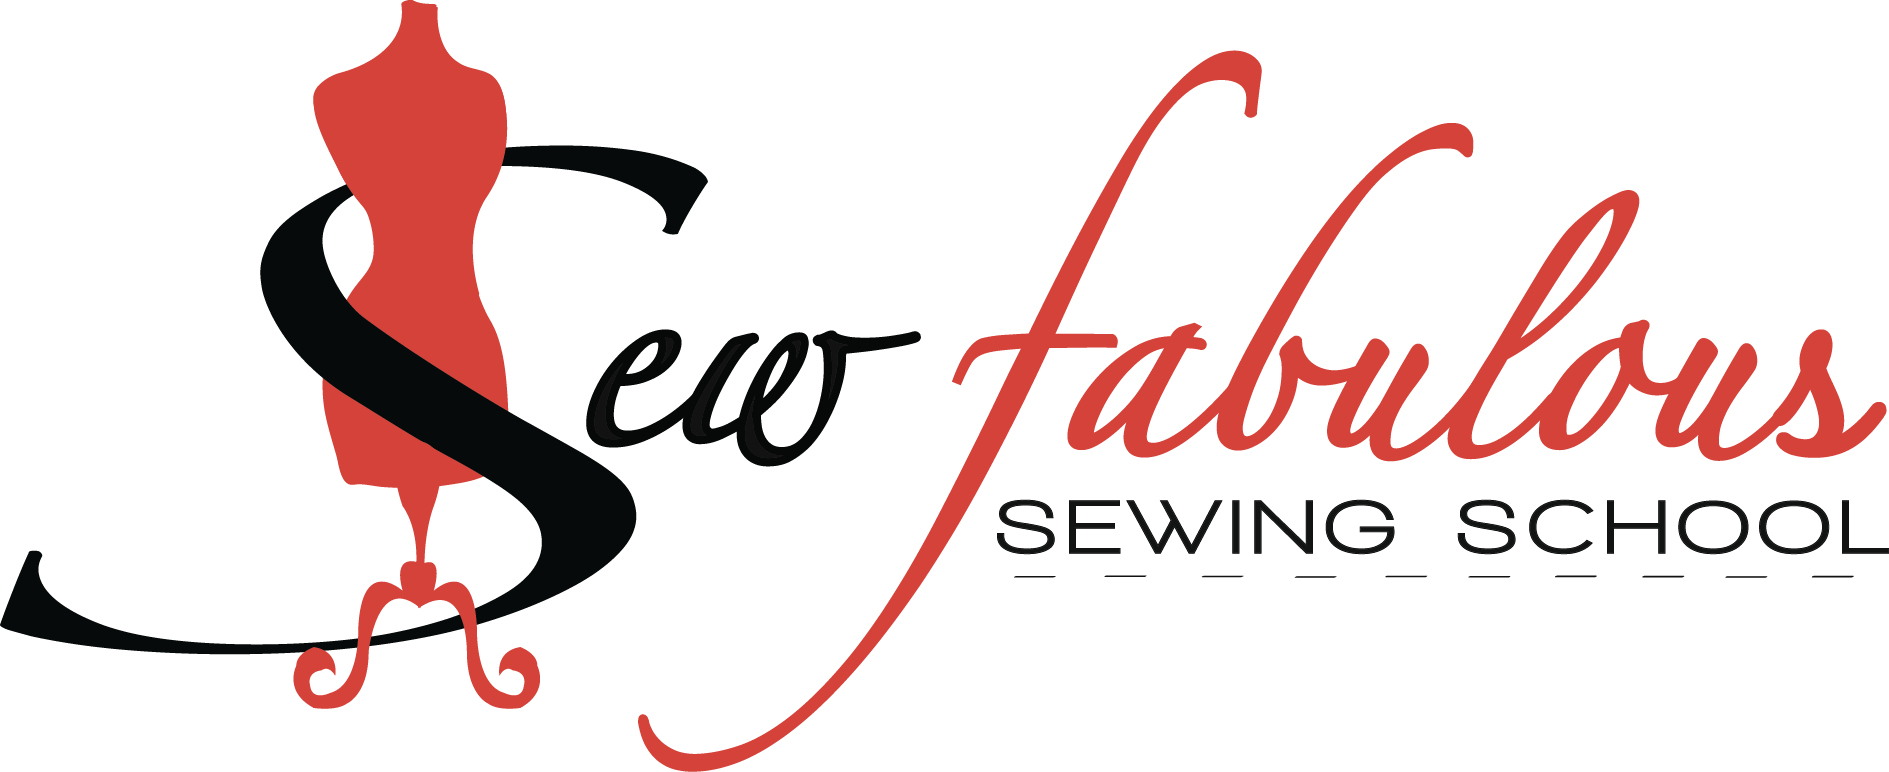 Classes And Services Sewfabulous Sewing